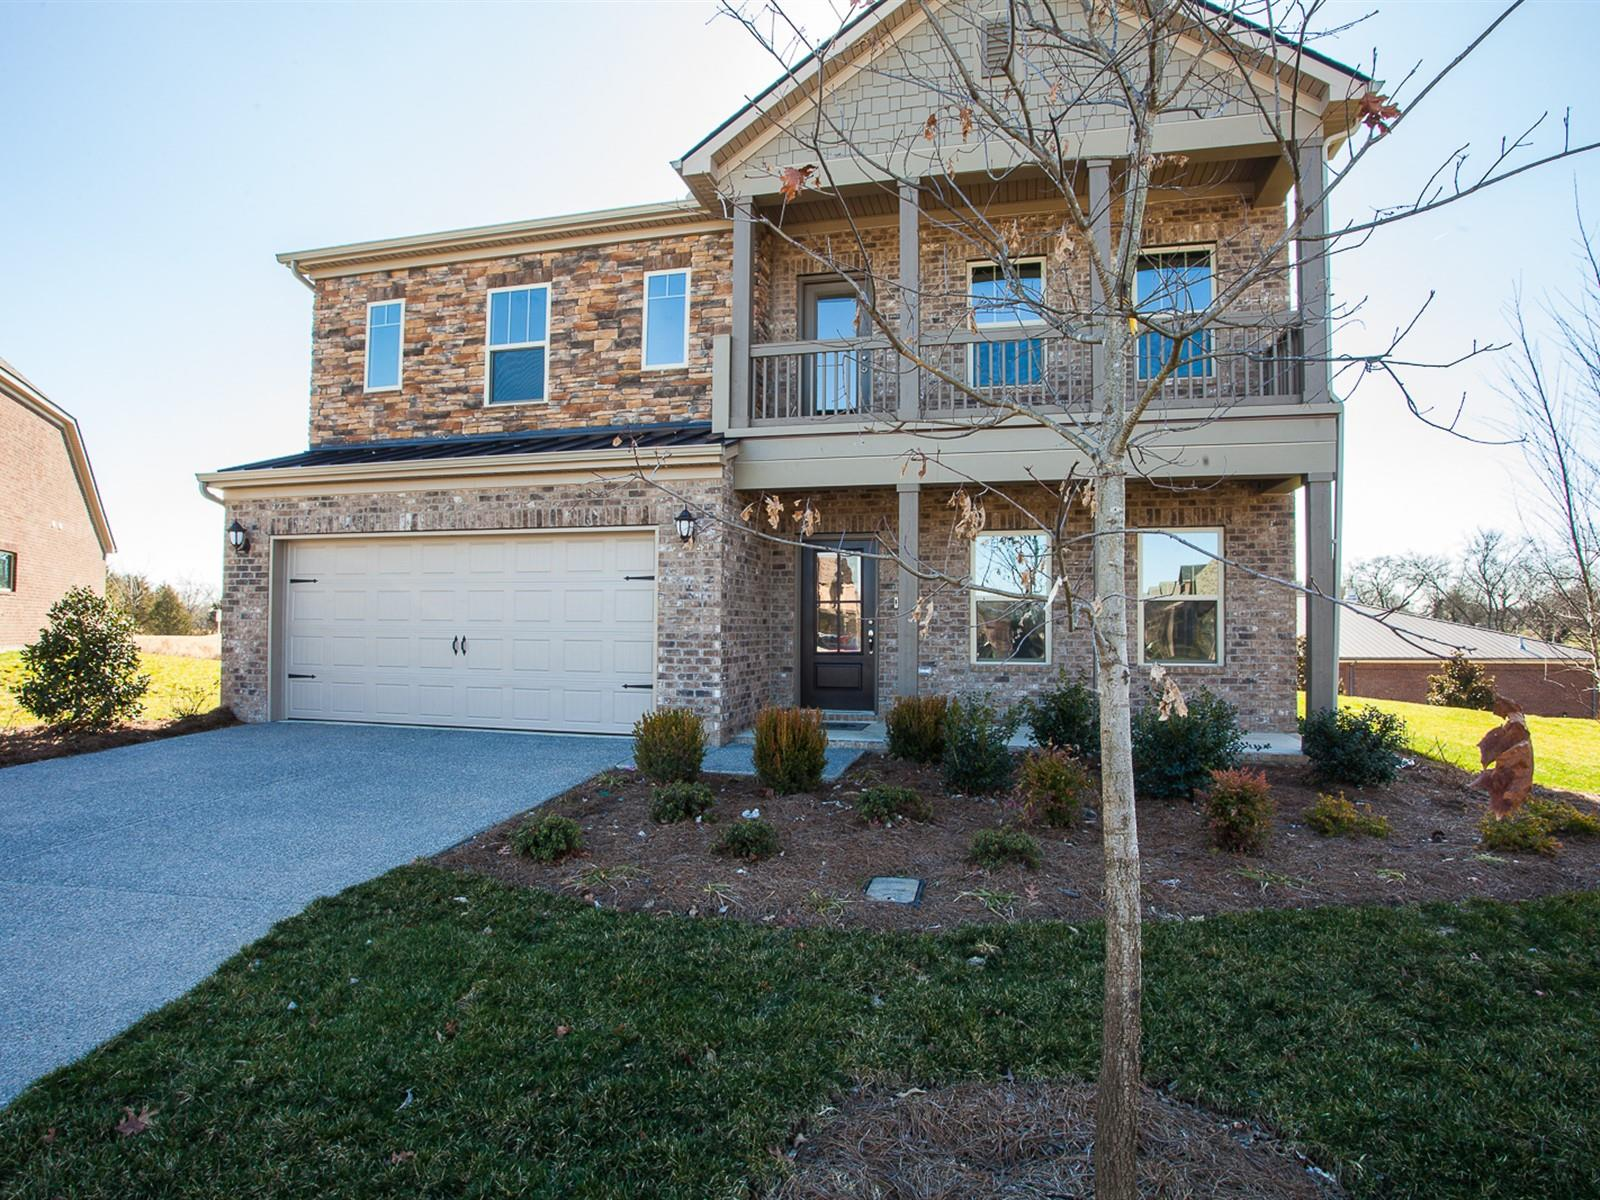 1744 Foxland Blvd - #1222 37066 - One of Gallatin Homes for Sale